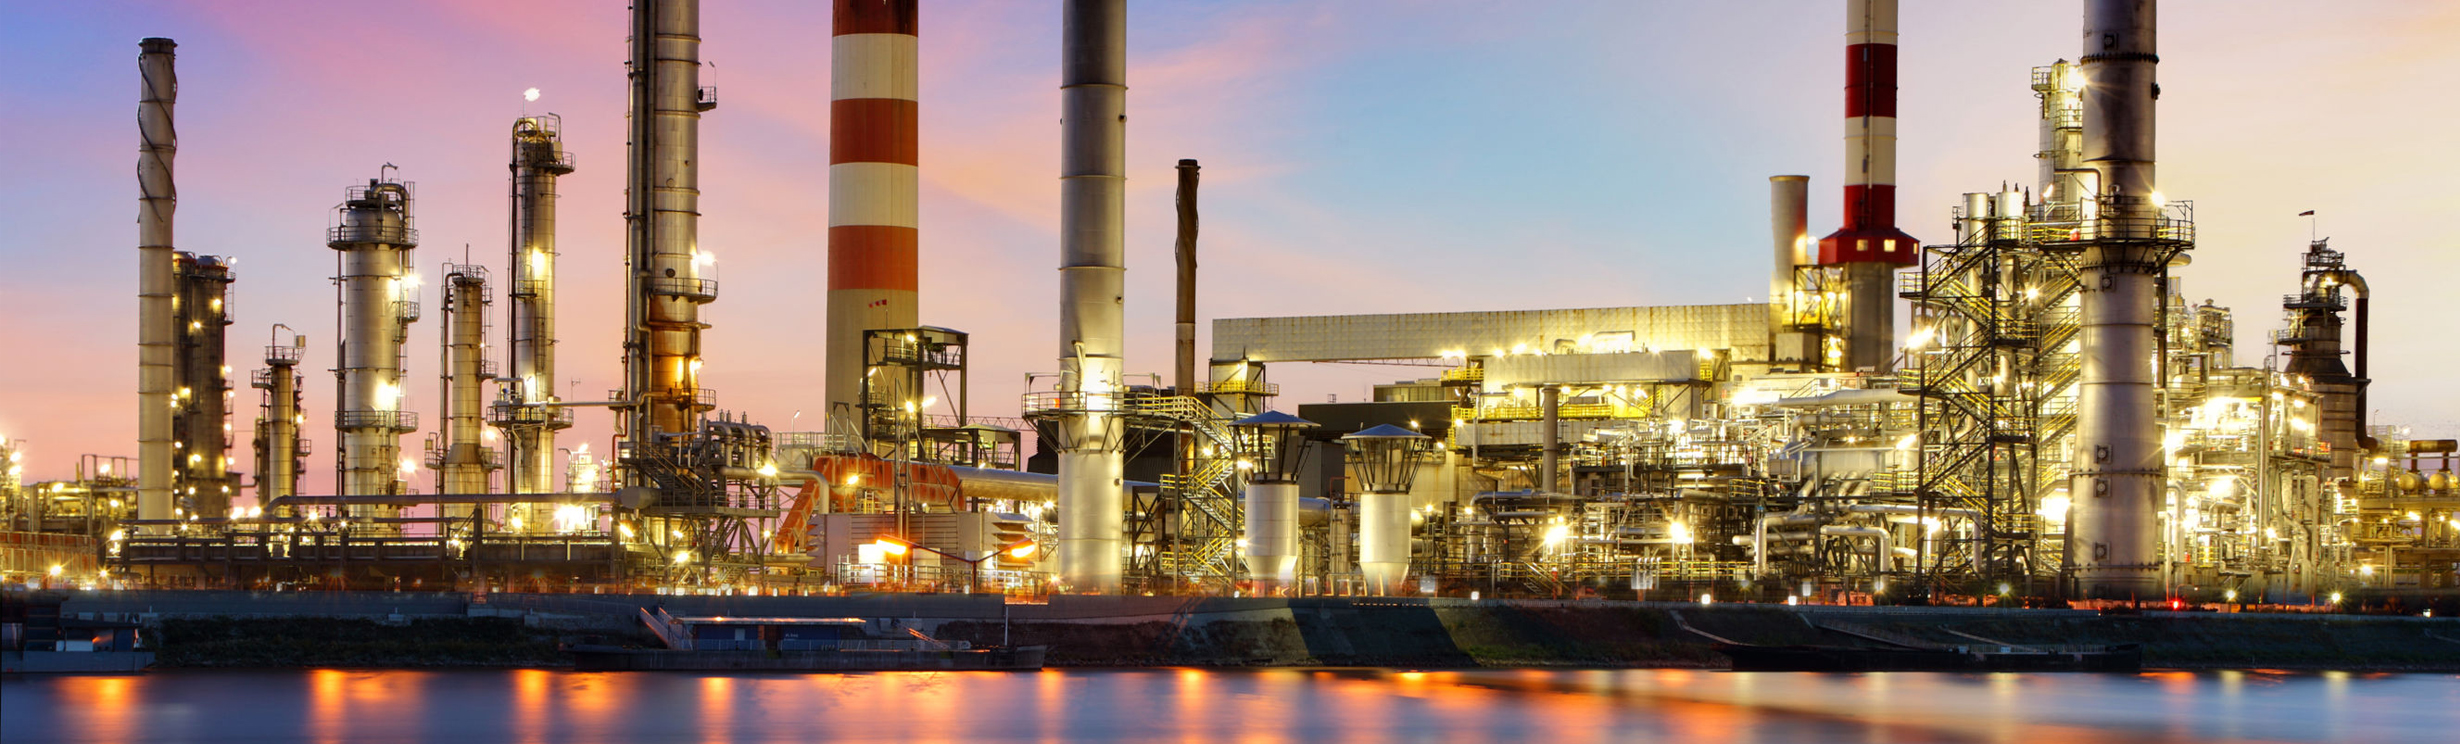 an analysis of the petrochemical industry in singapore